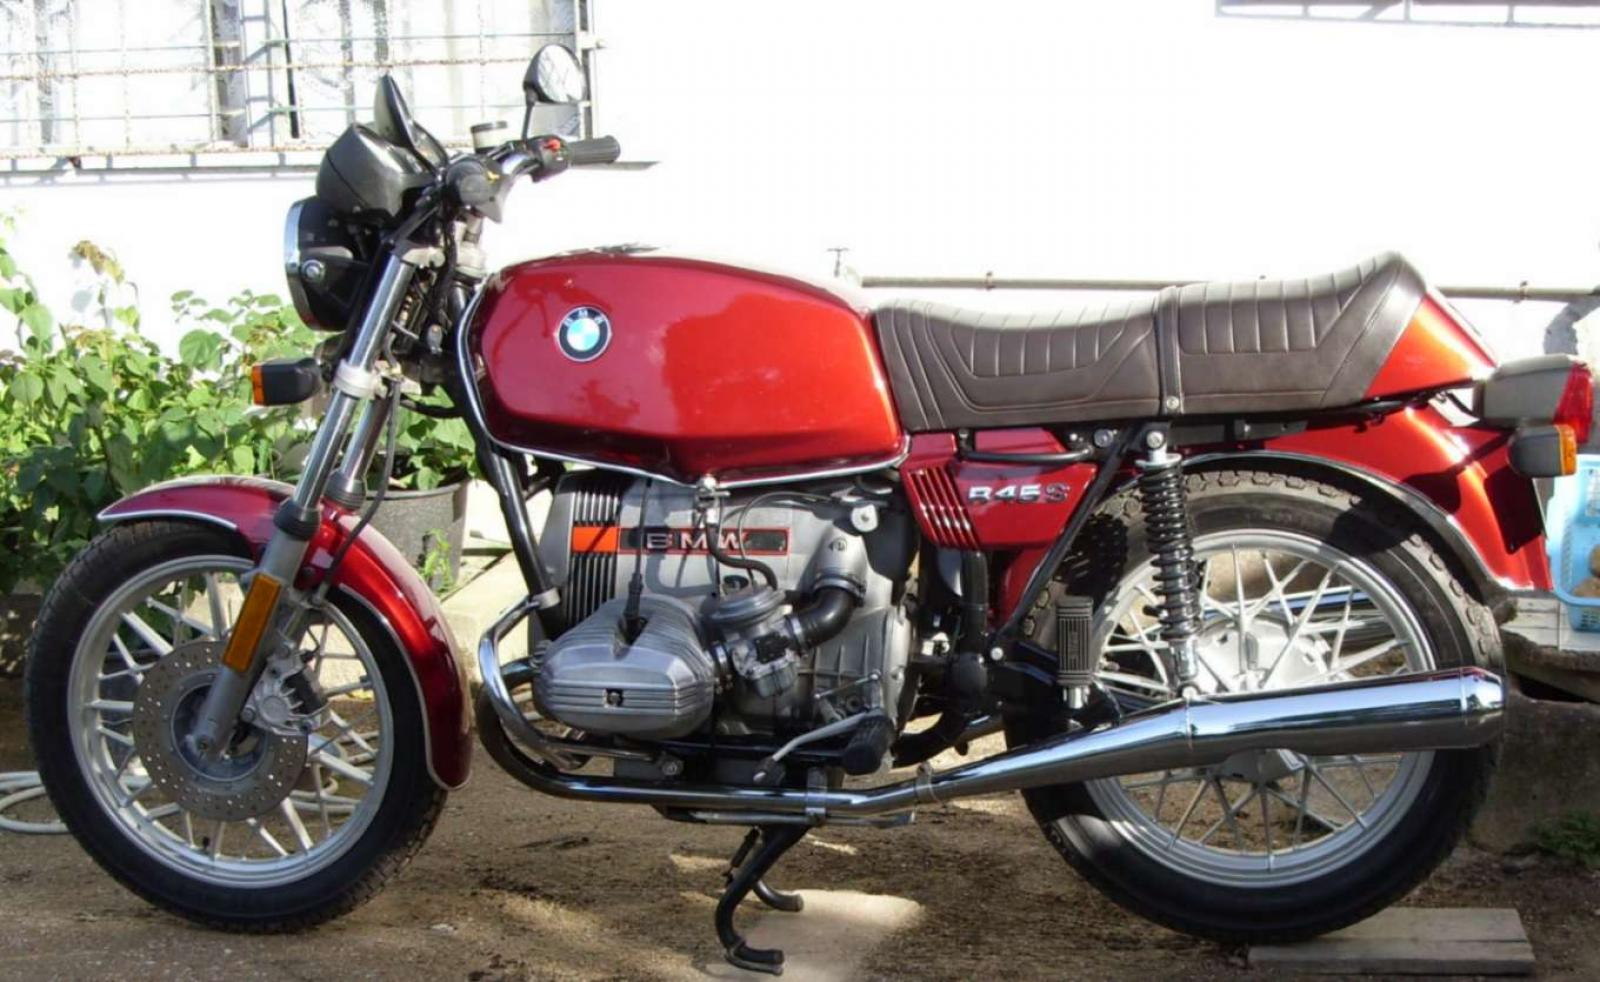 BMW R45 (reduced effect) 1982 images #4436